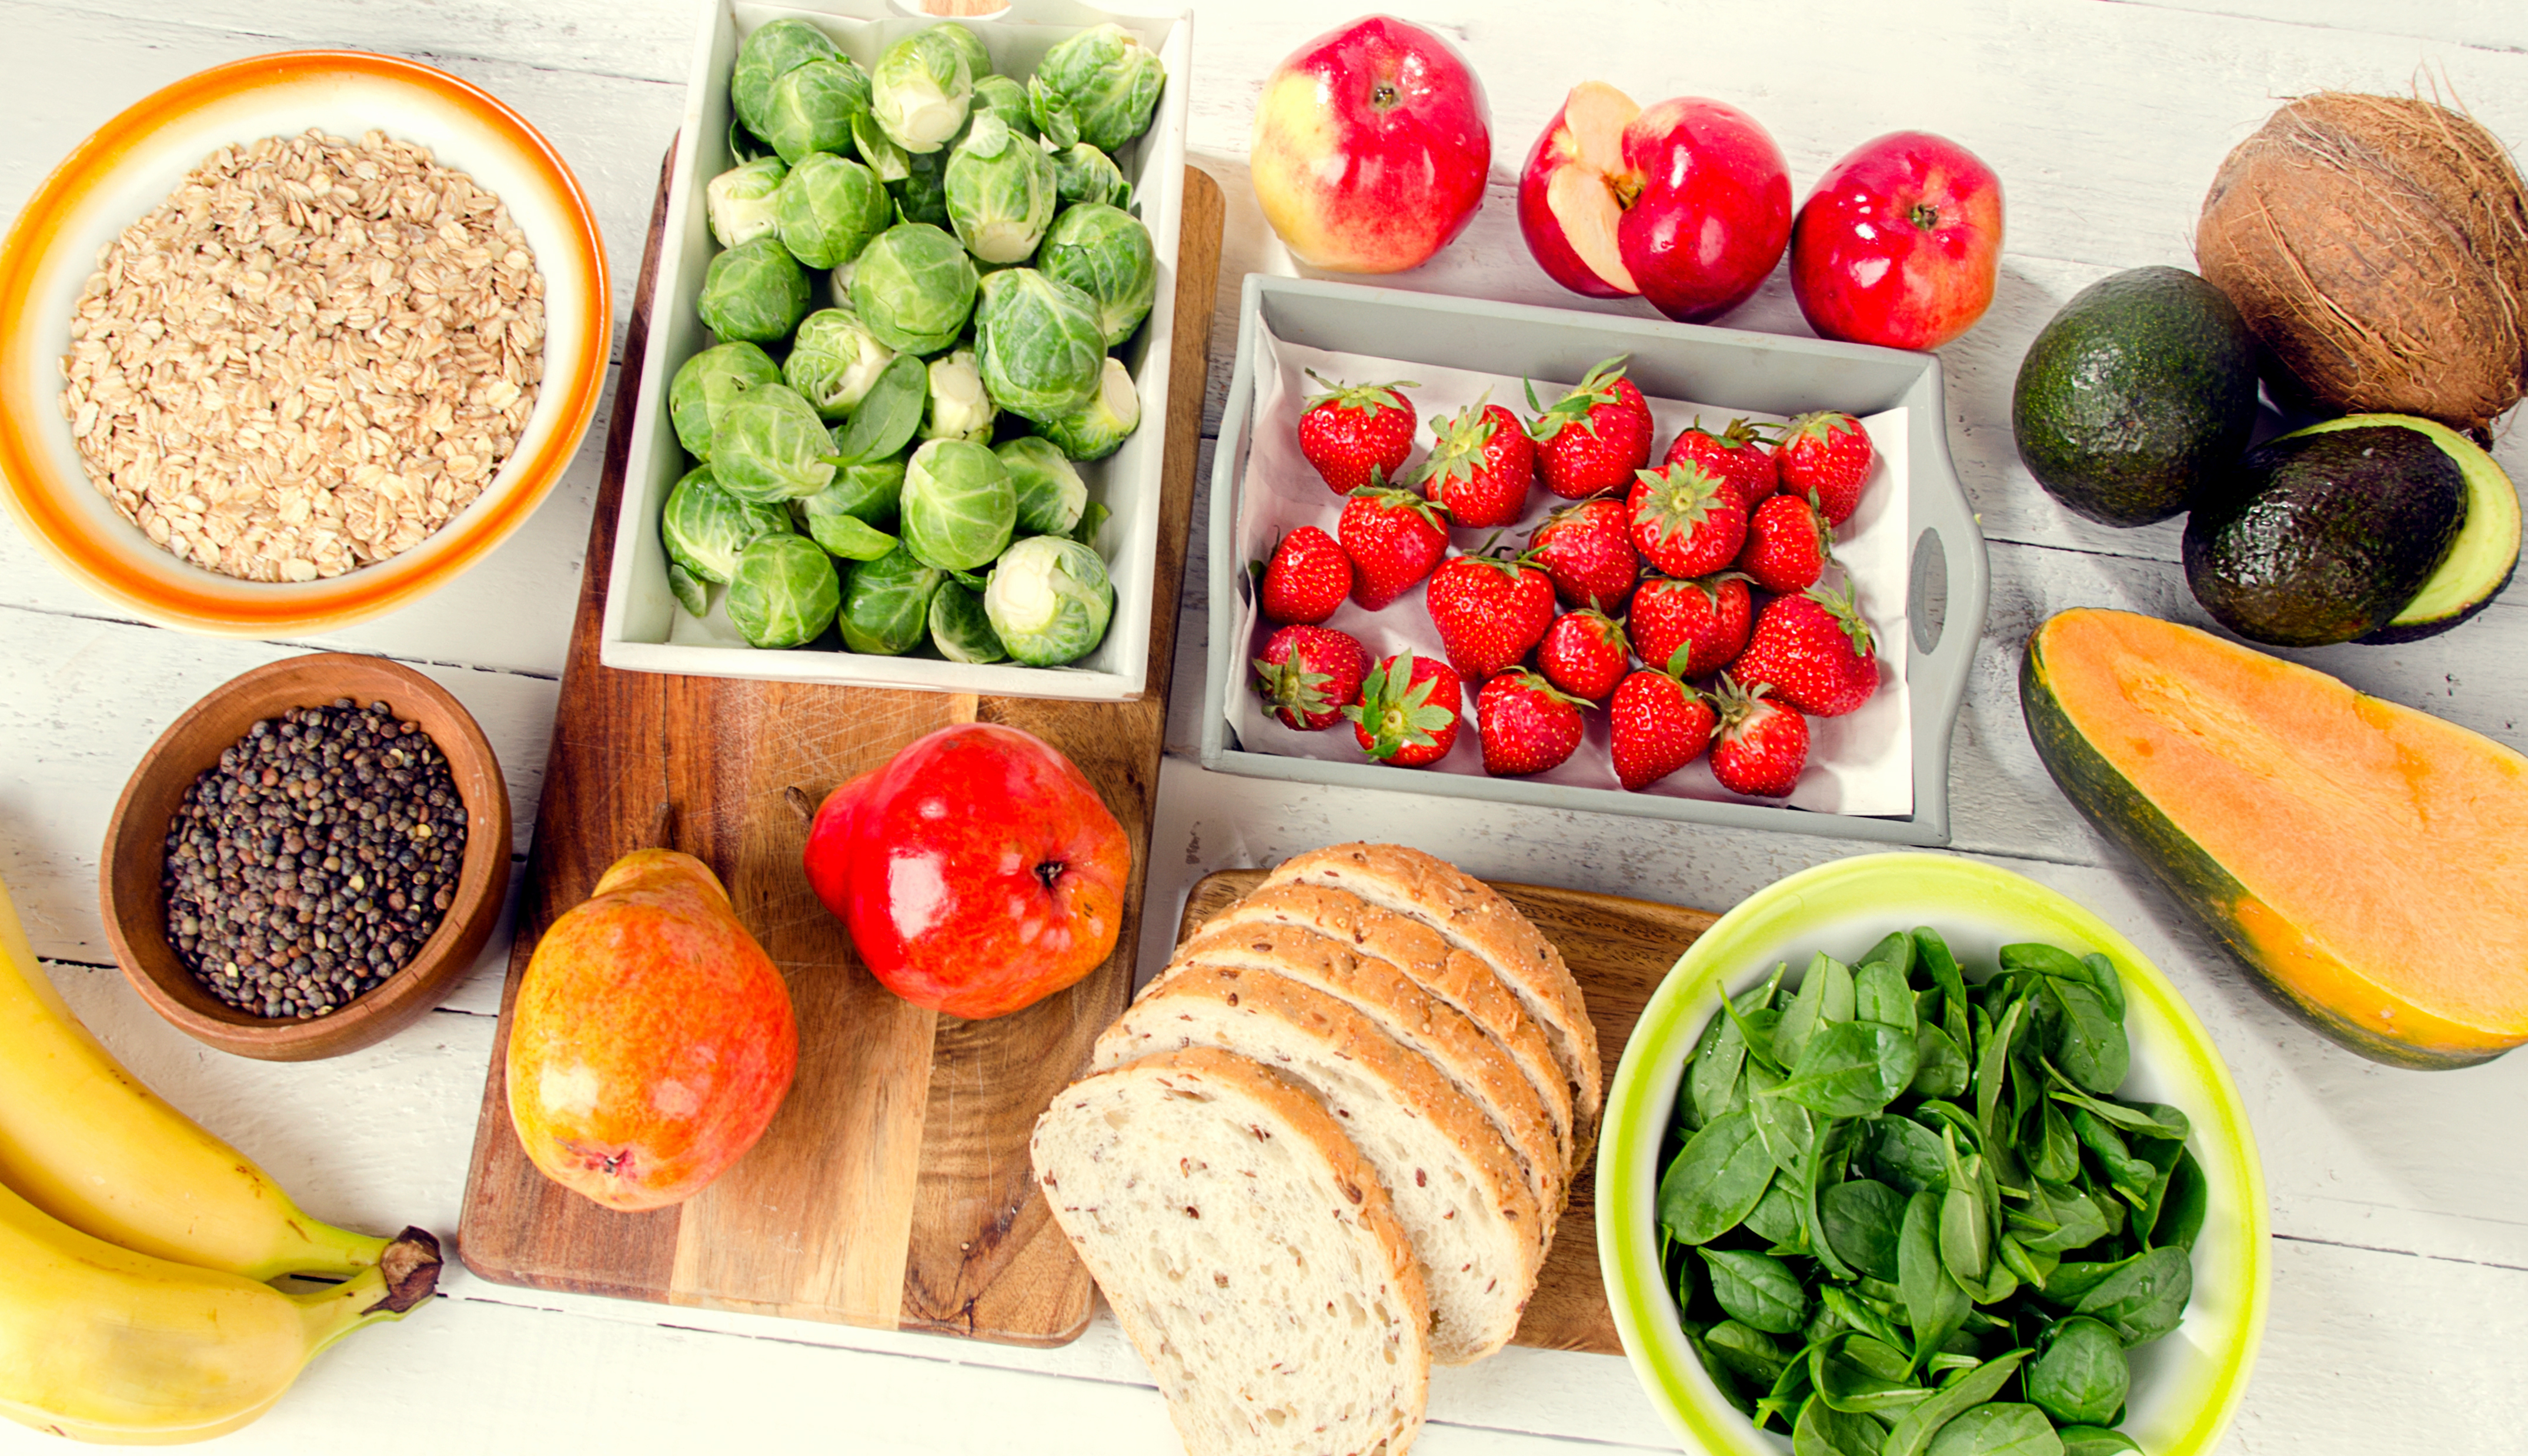 What Are The Healthy Foods To Eat Daily